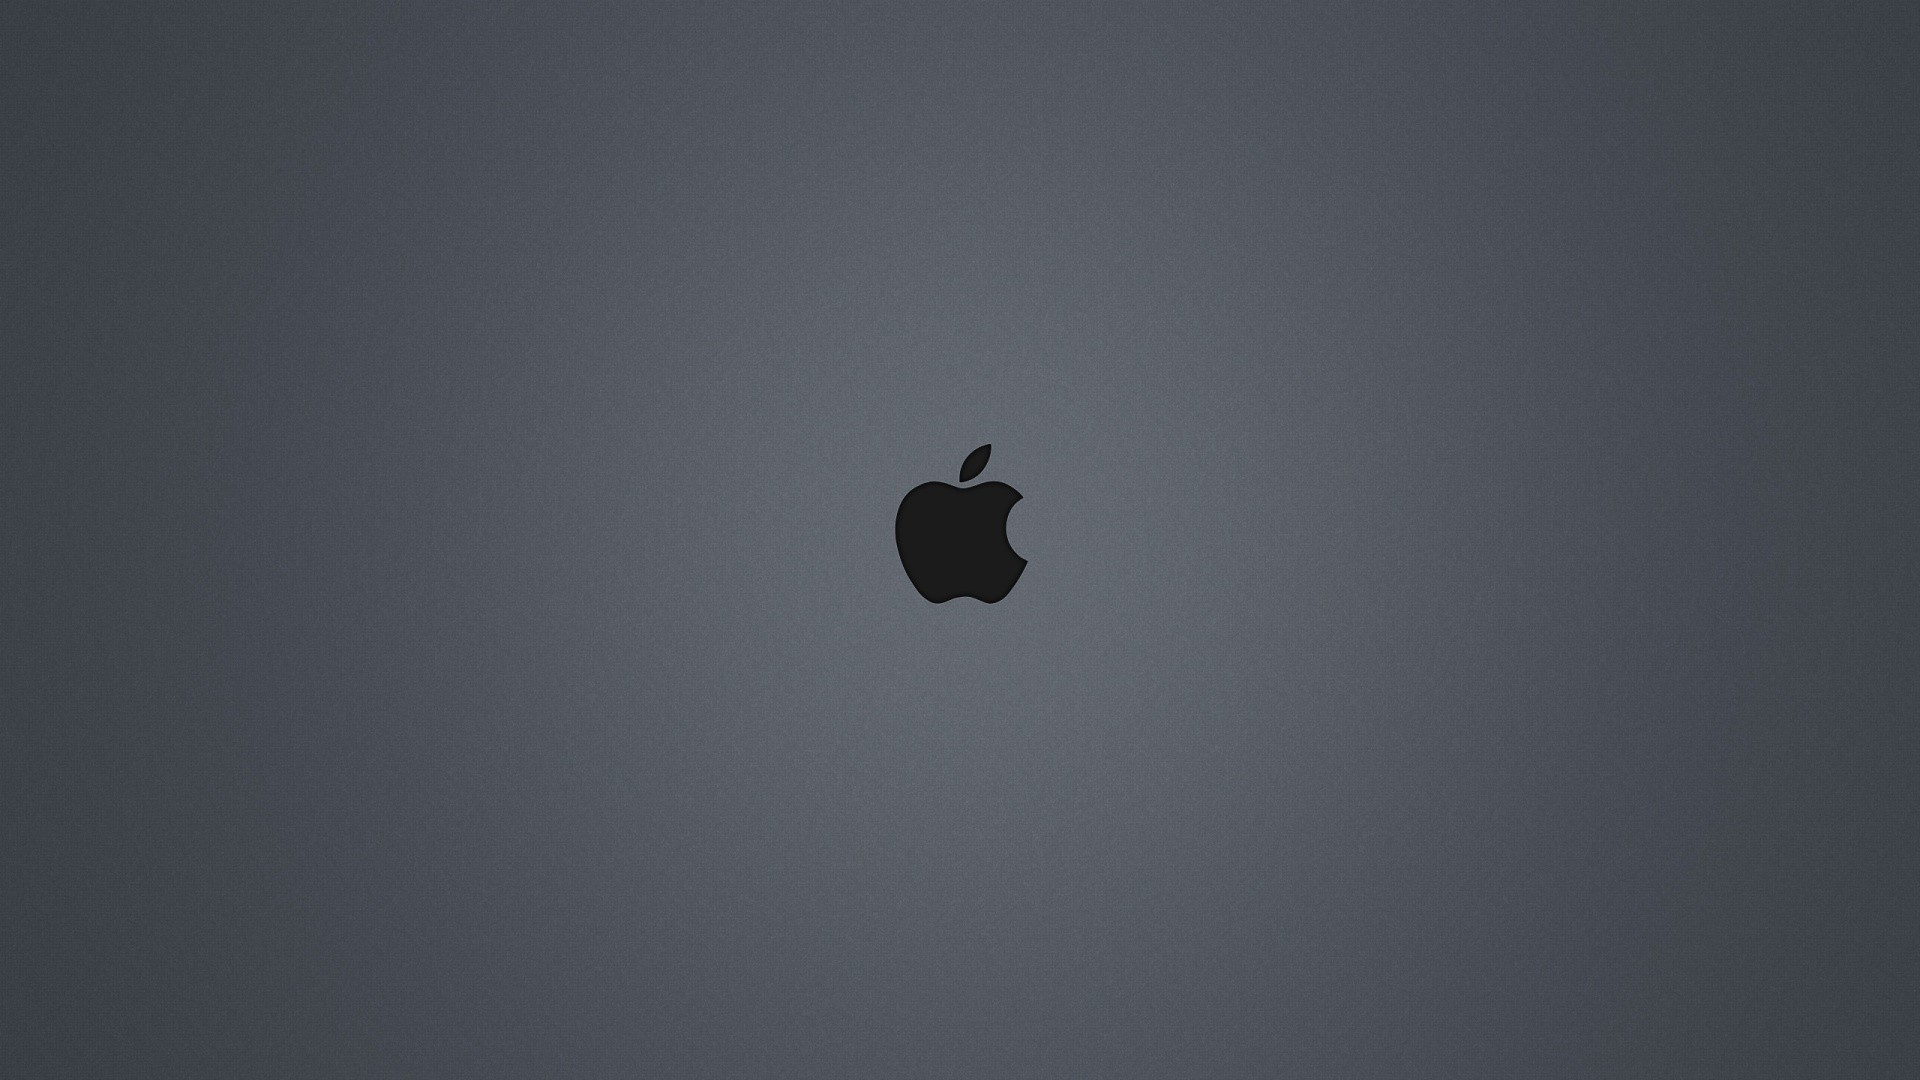 Apple Android Wallpaper (79+ Images